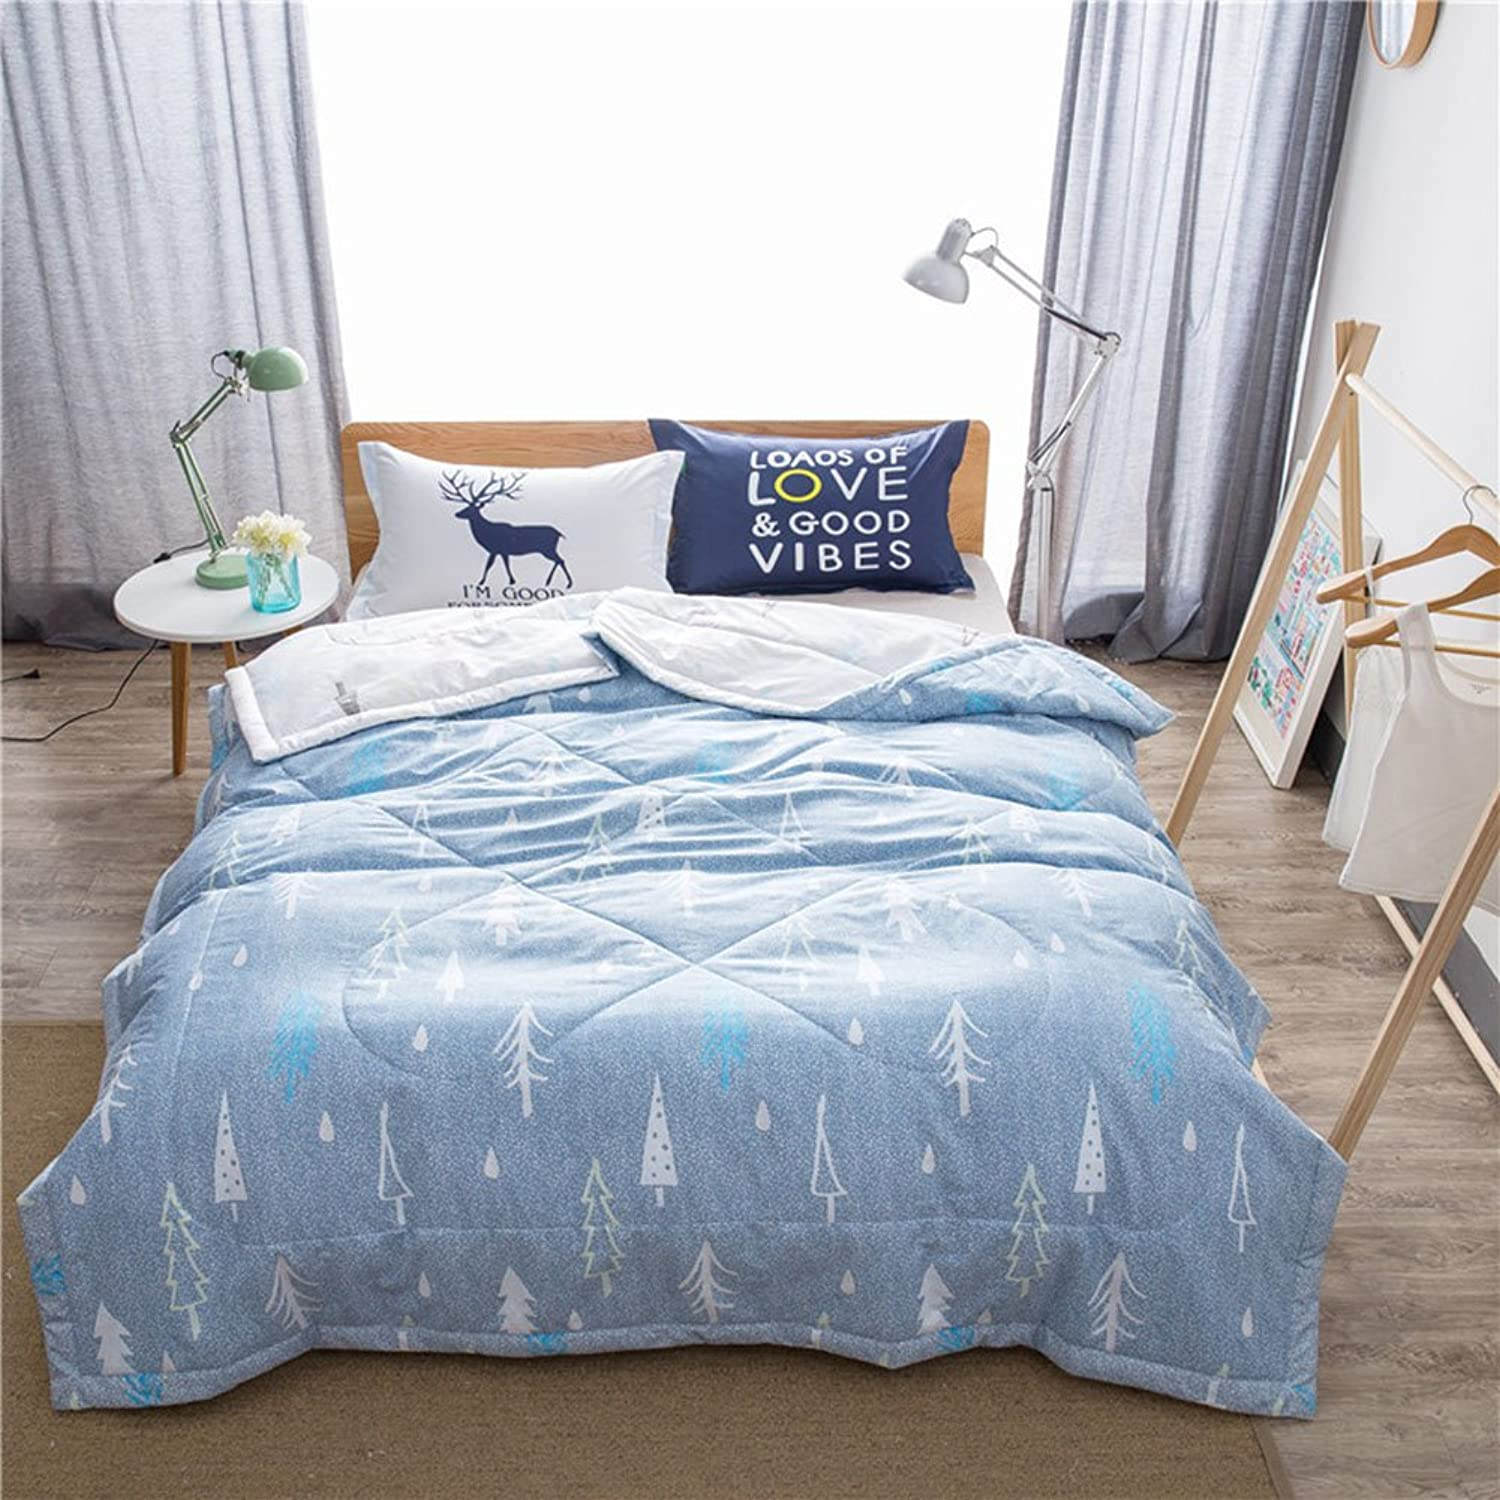 Uther King Summer Quilt Reversible Comforter Duvet The Alternative Thin Comforter Pine Design